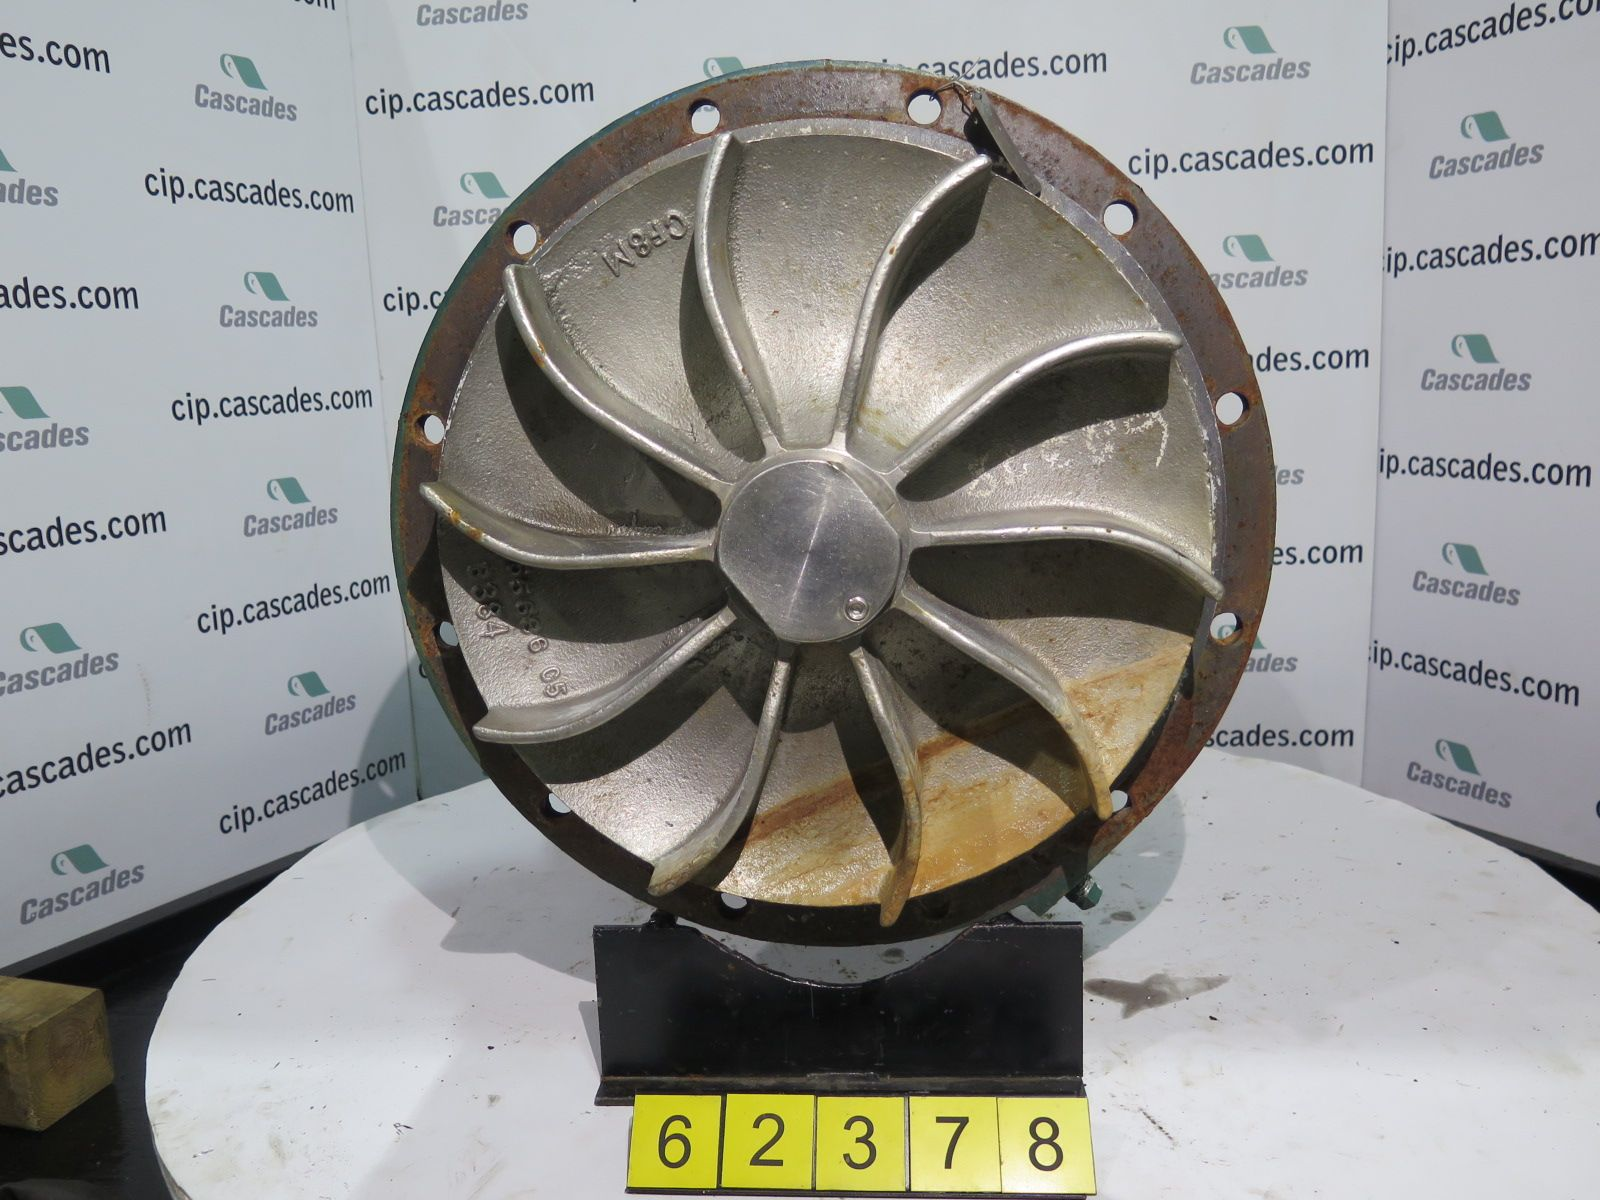 PUMP - WEMCO - LRH 17 - 8 X 10 - 17 - RECESSED IMPELLER PUMP